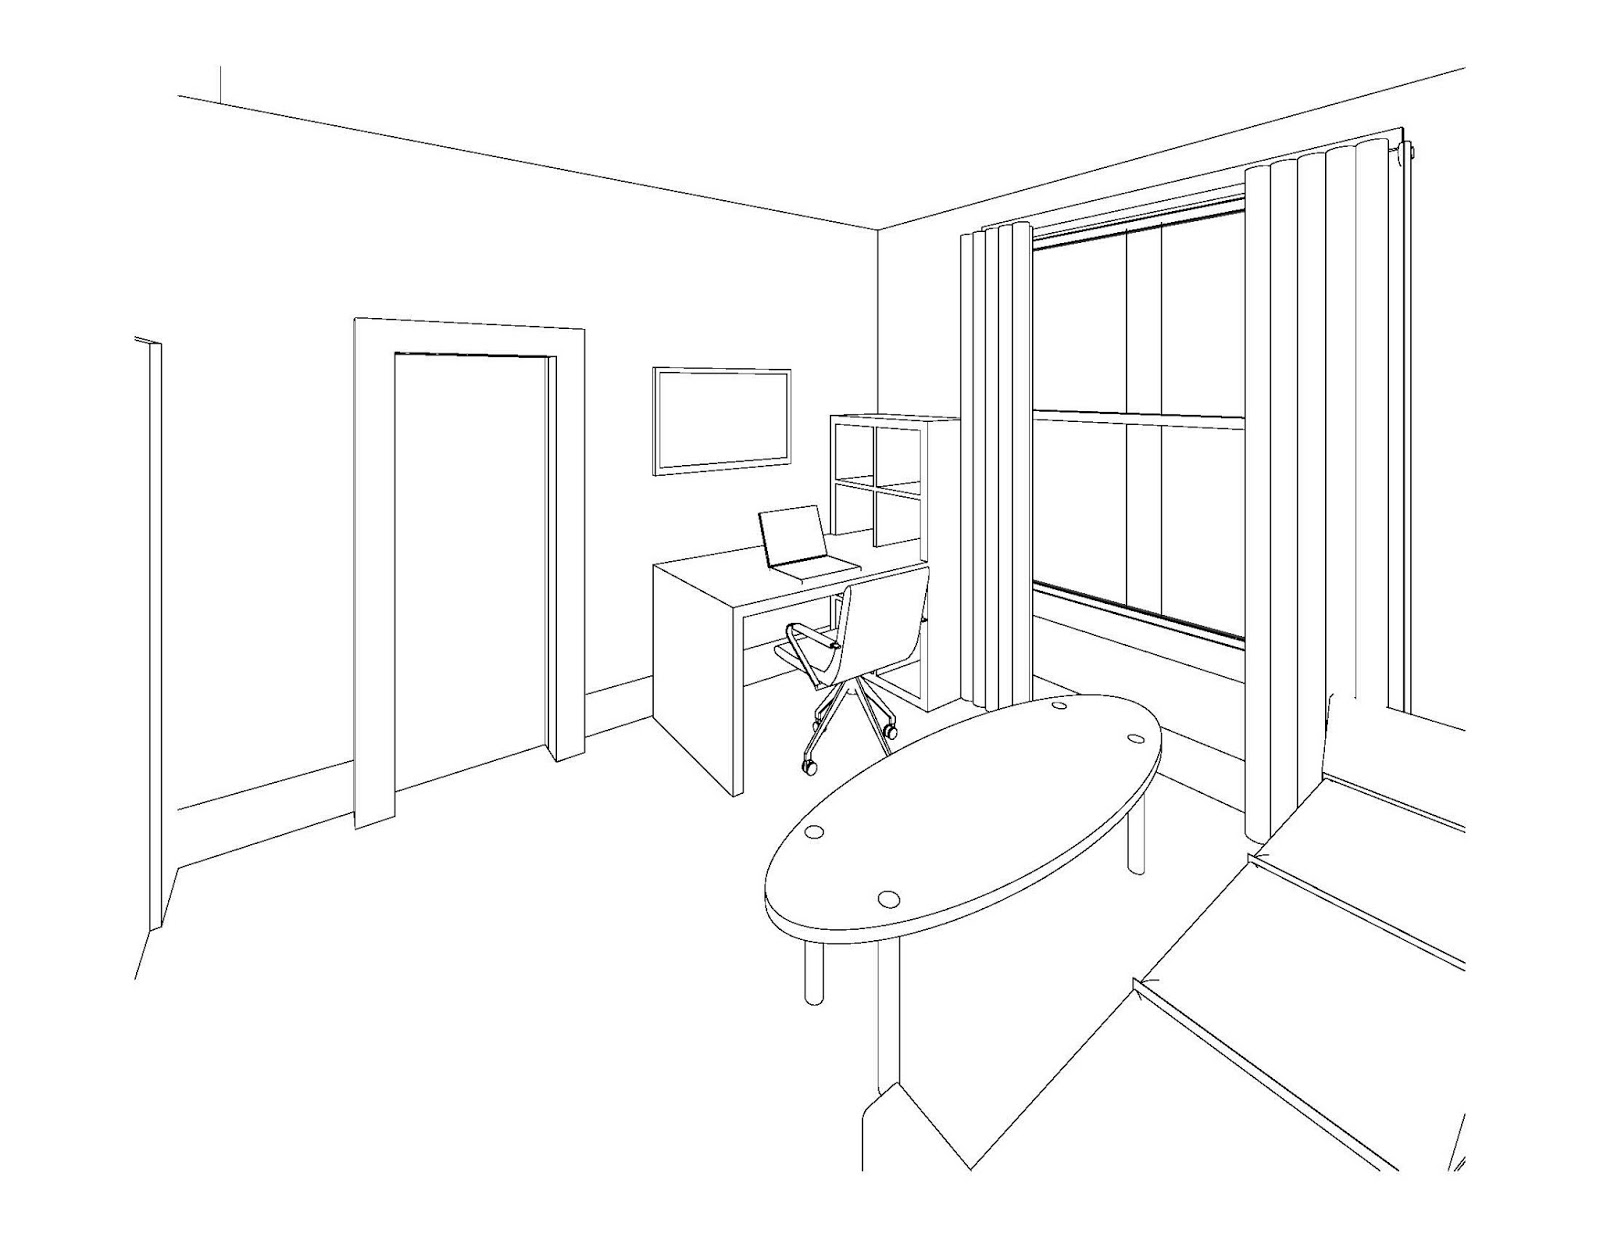 Bedroom Drawing At Free For Personal Use How To Draw A Wiring Diagram 1600x1237 Room Guitar Speaker Diagrams Uml